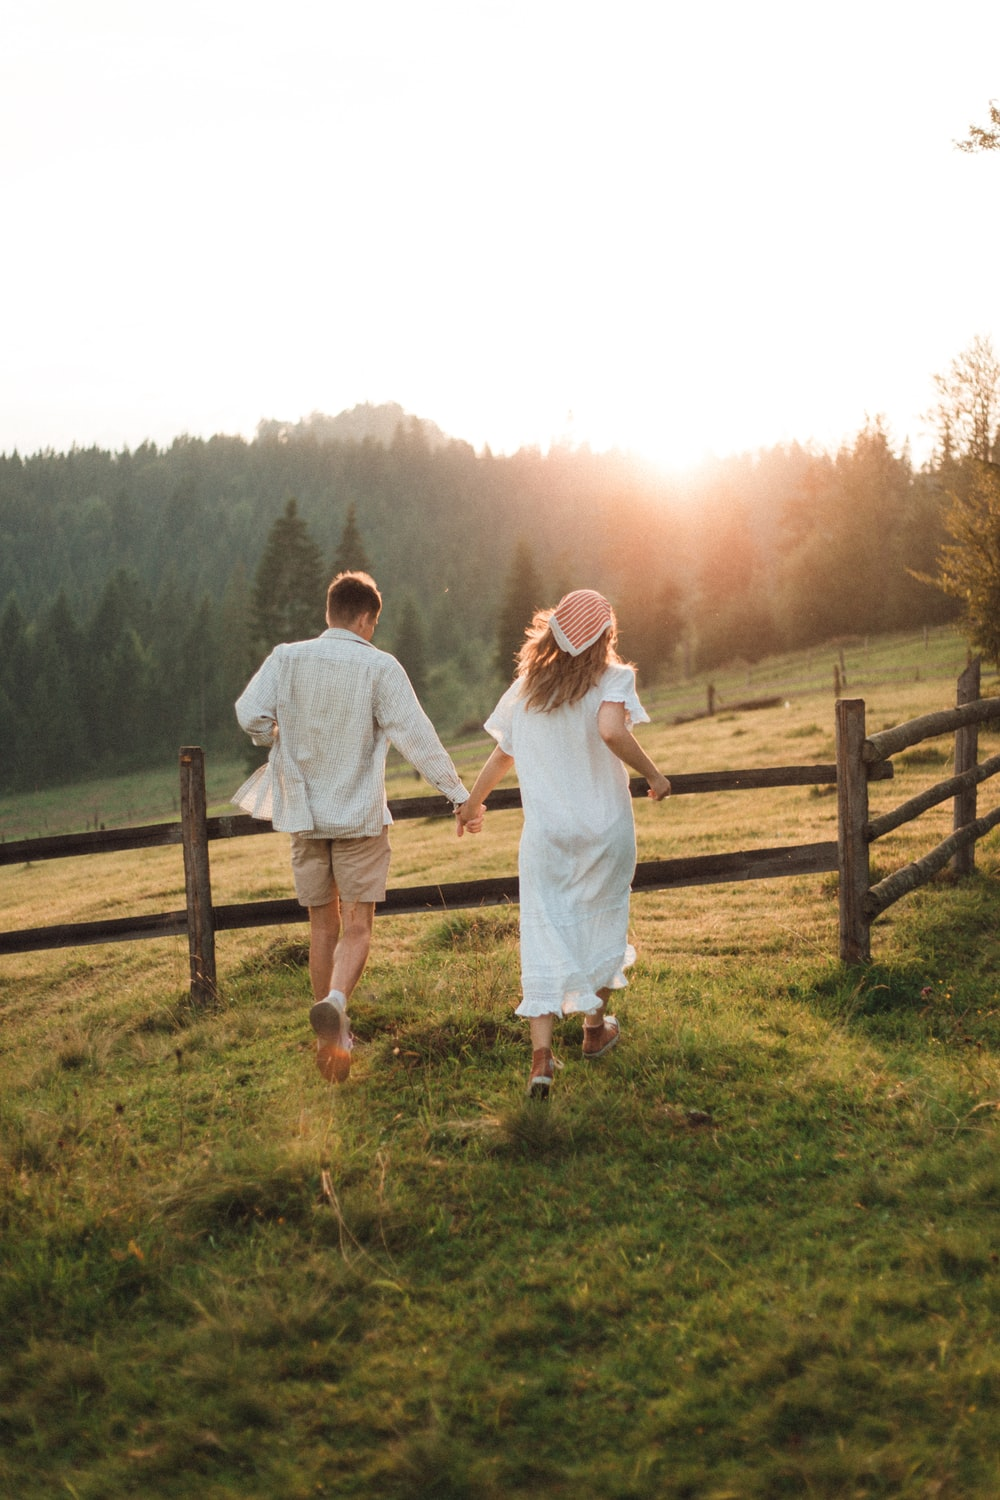 man and woman standing on green grass field during daytime